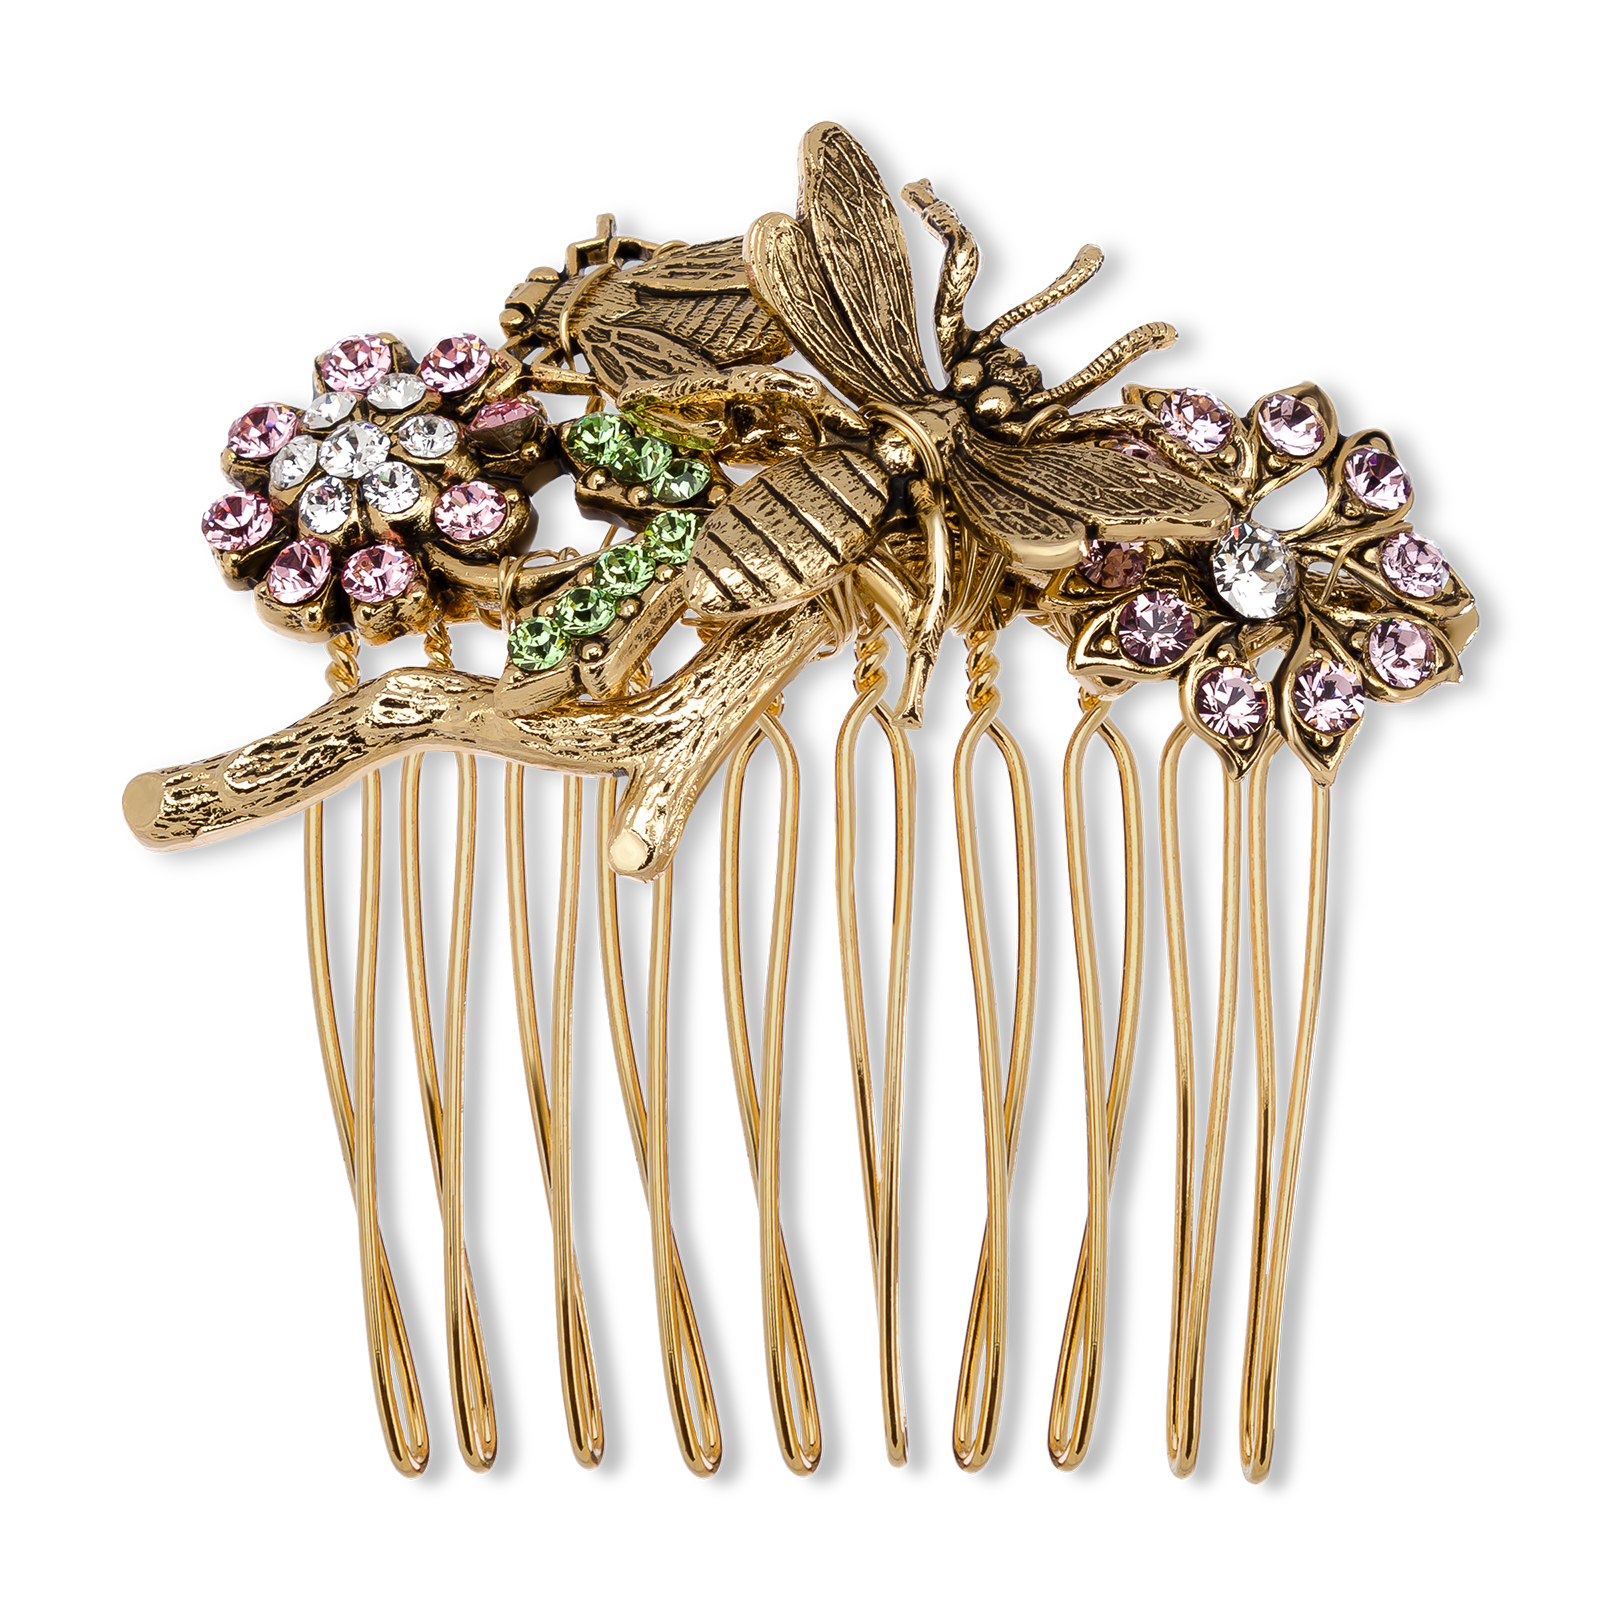 Decorative hair comb product photo